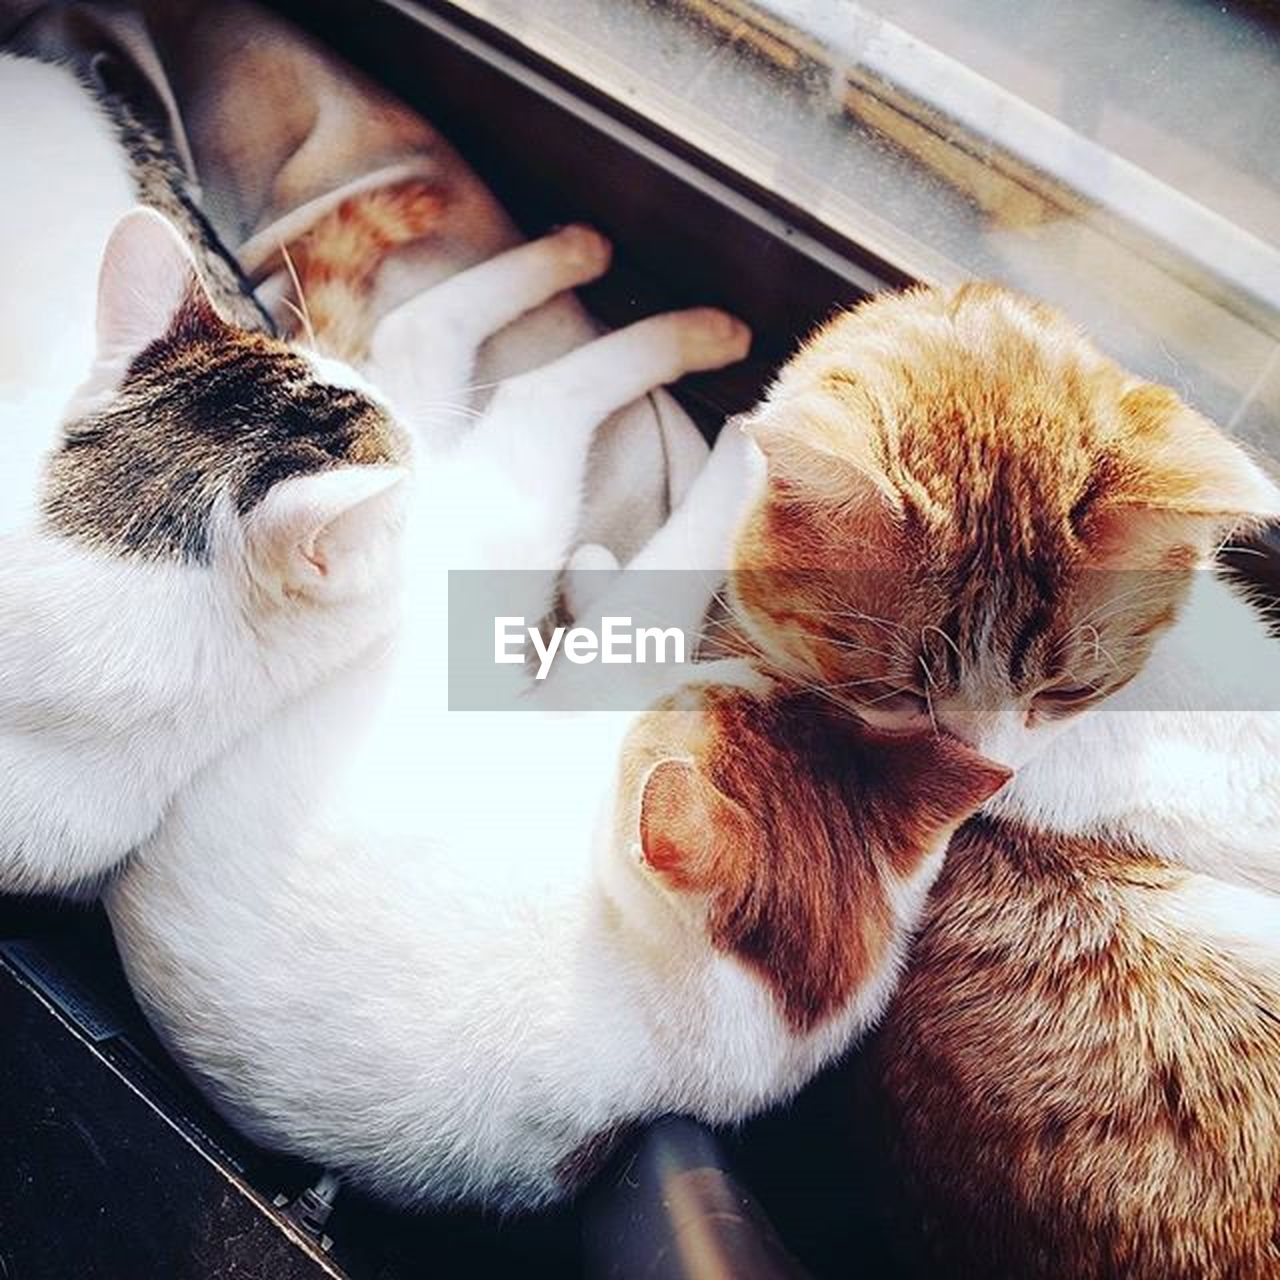 domestic animals, pets, domestic, animal themes, animal, mammal, cat, domestic cat, group of animals, feline, vertebrate, two animals, high angle view, indoors, no people, sleeping, close-up, relaxation, eyes closed, whisker, animal family